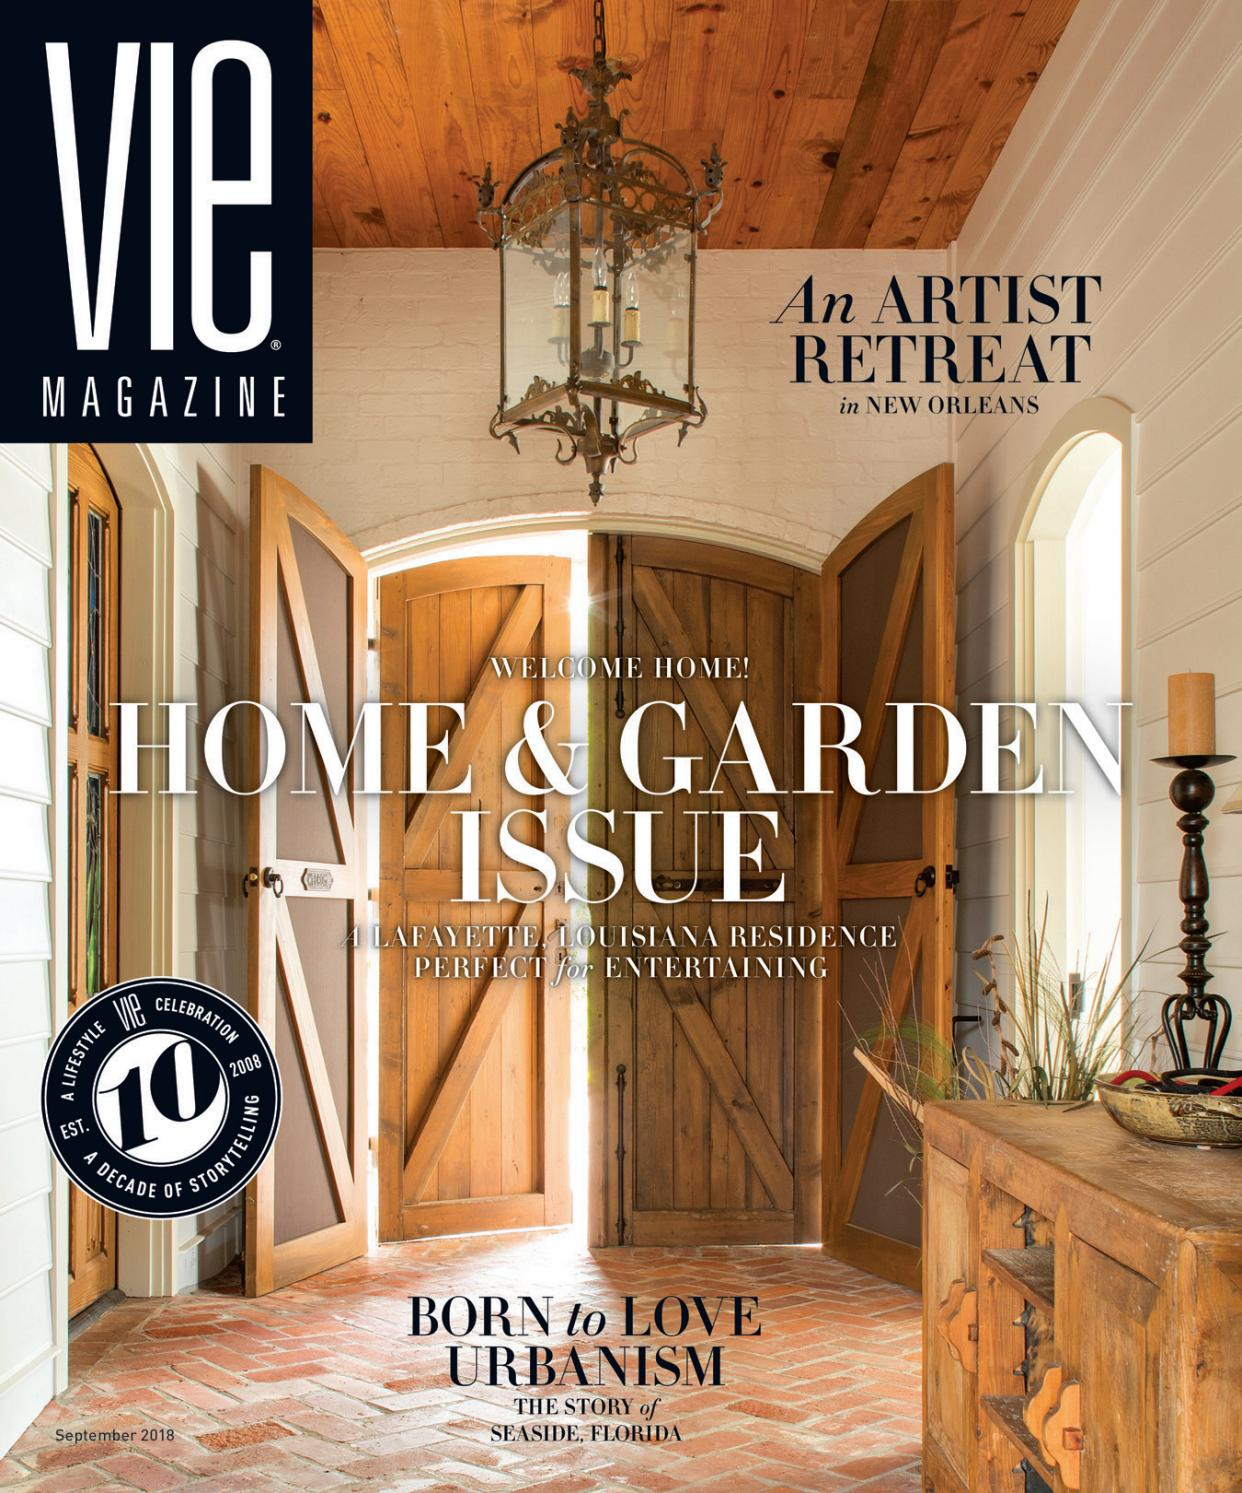 VIE Magazine September 2018 by The Idea Boutique - issuu